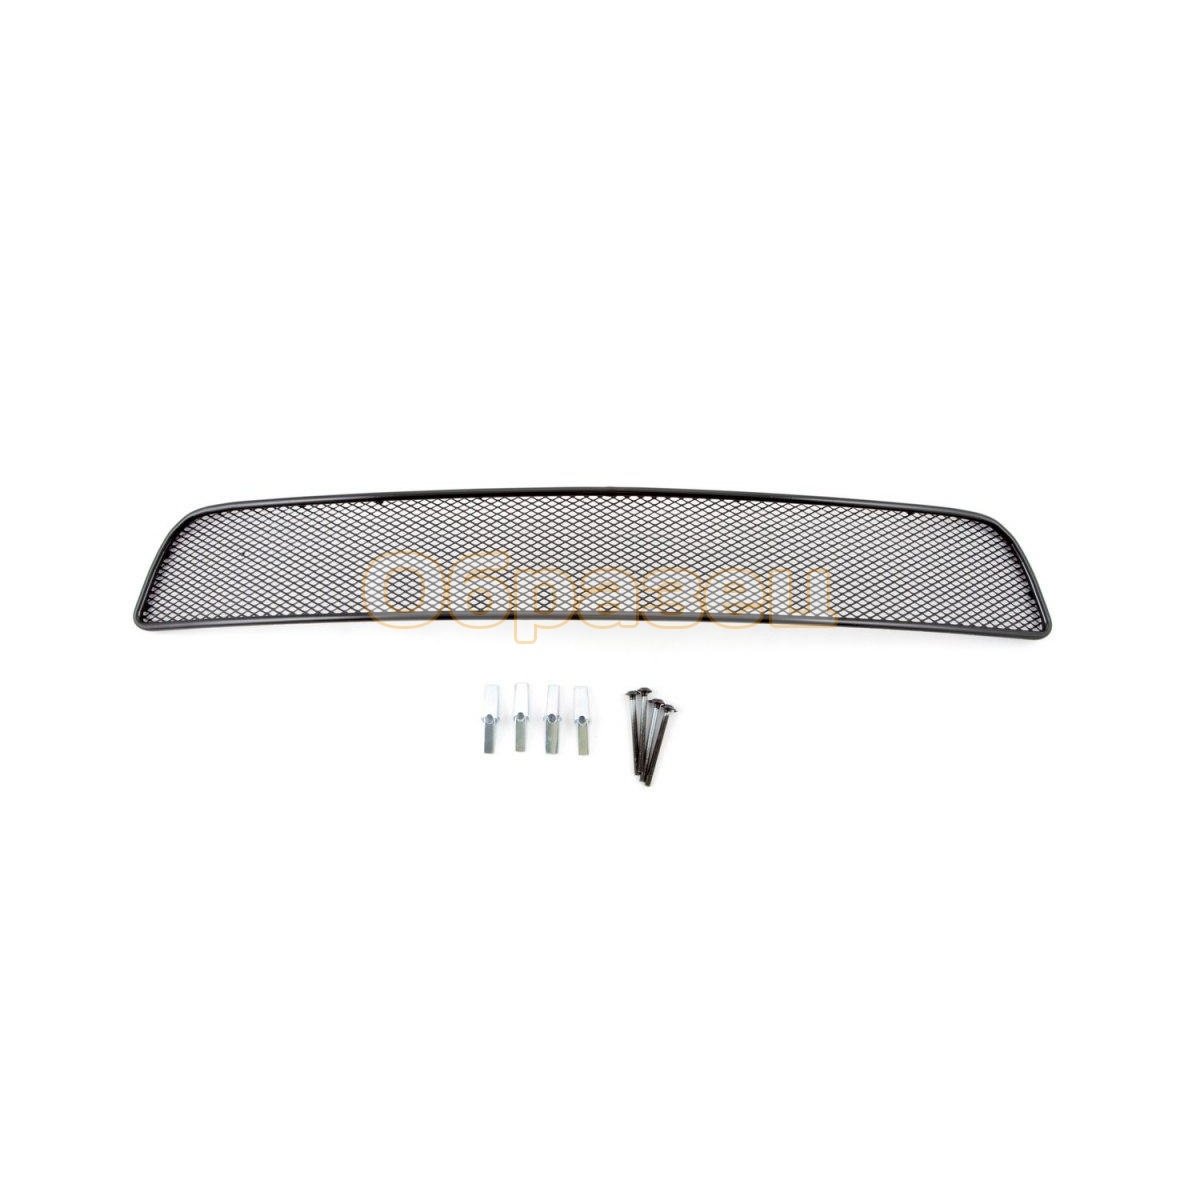 Mesh On Bumper Exterior For Hyundai Creta 2016-, Black, 10mm (Hyundai)